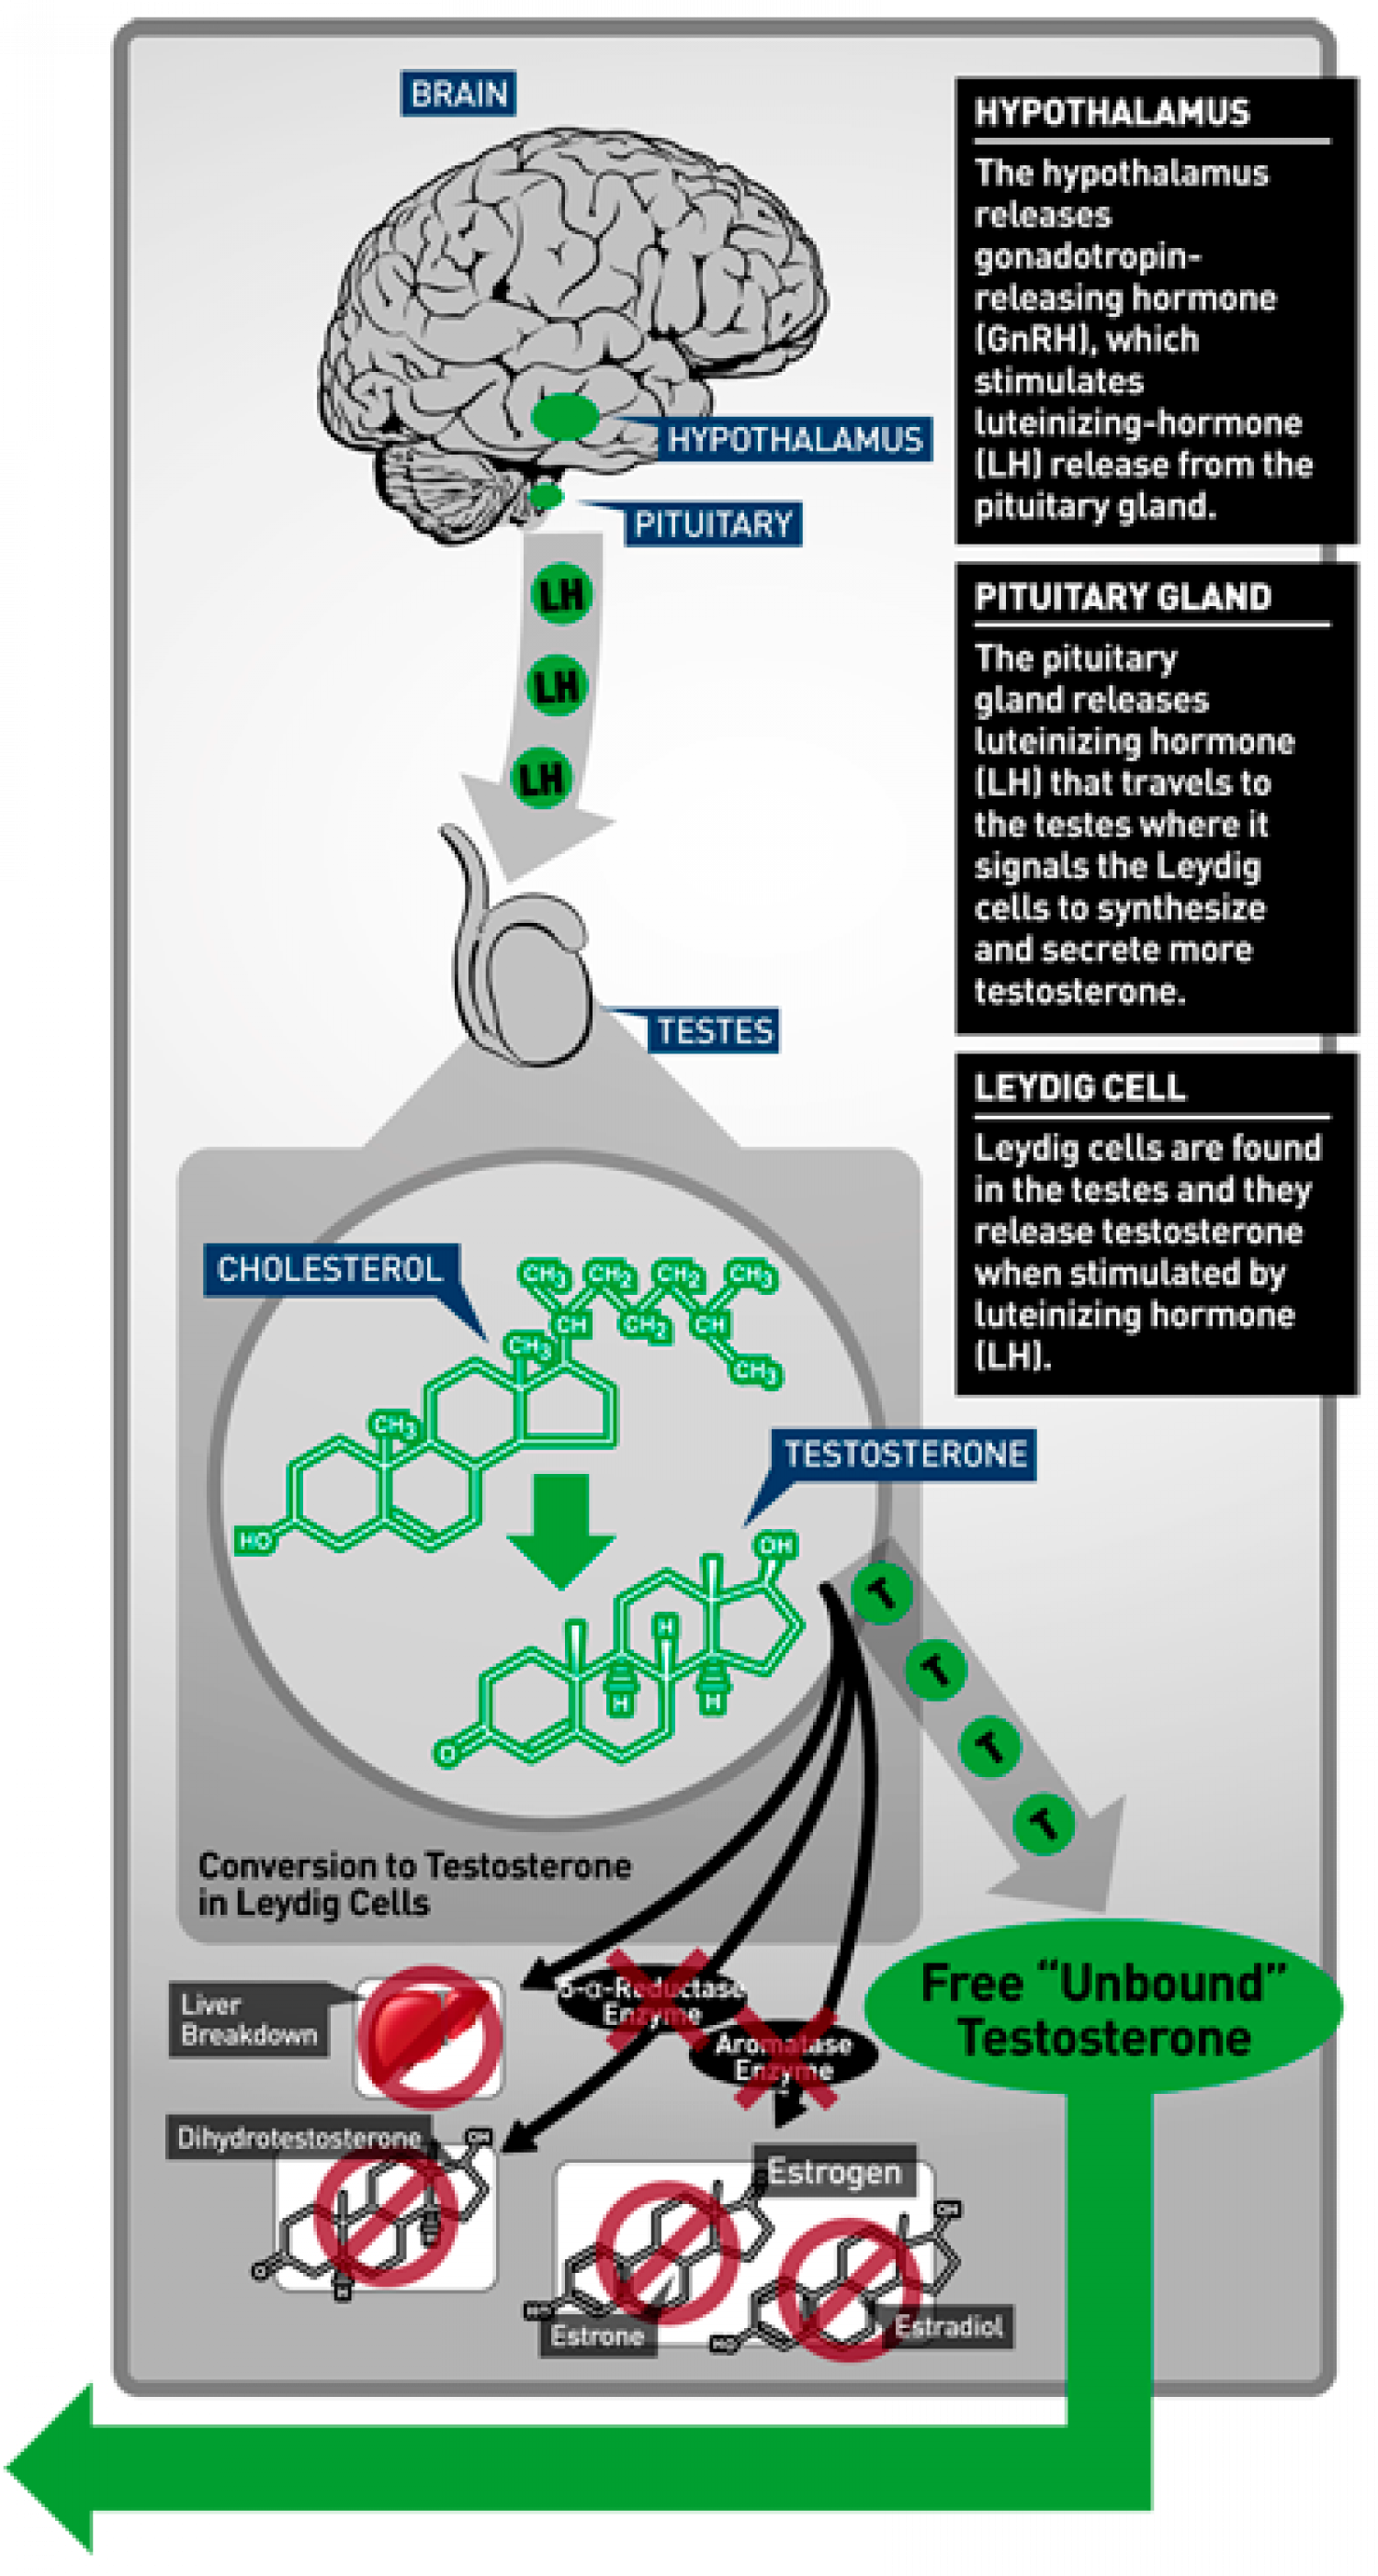 How testosterone secreted in human body Infographic